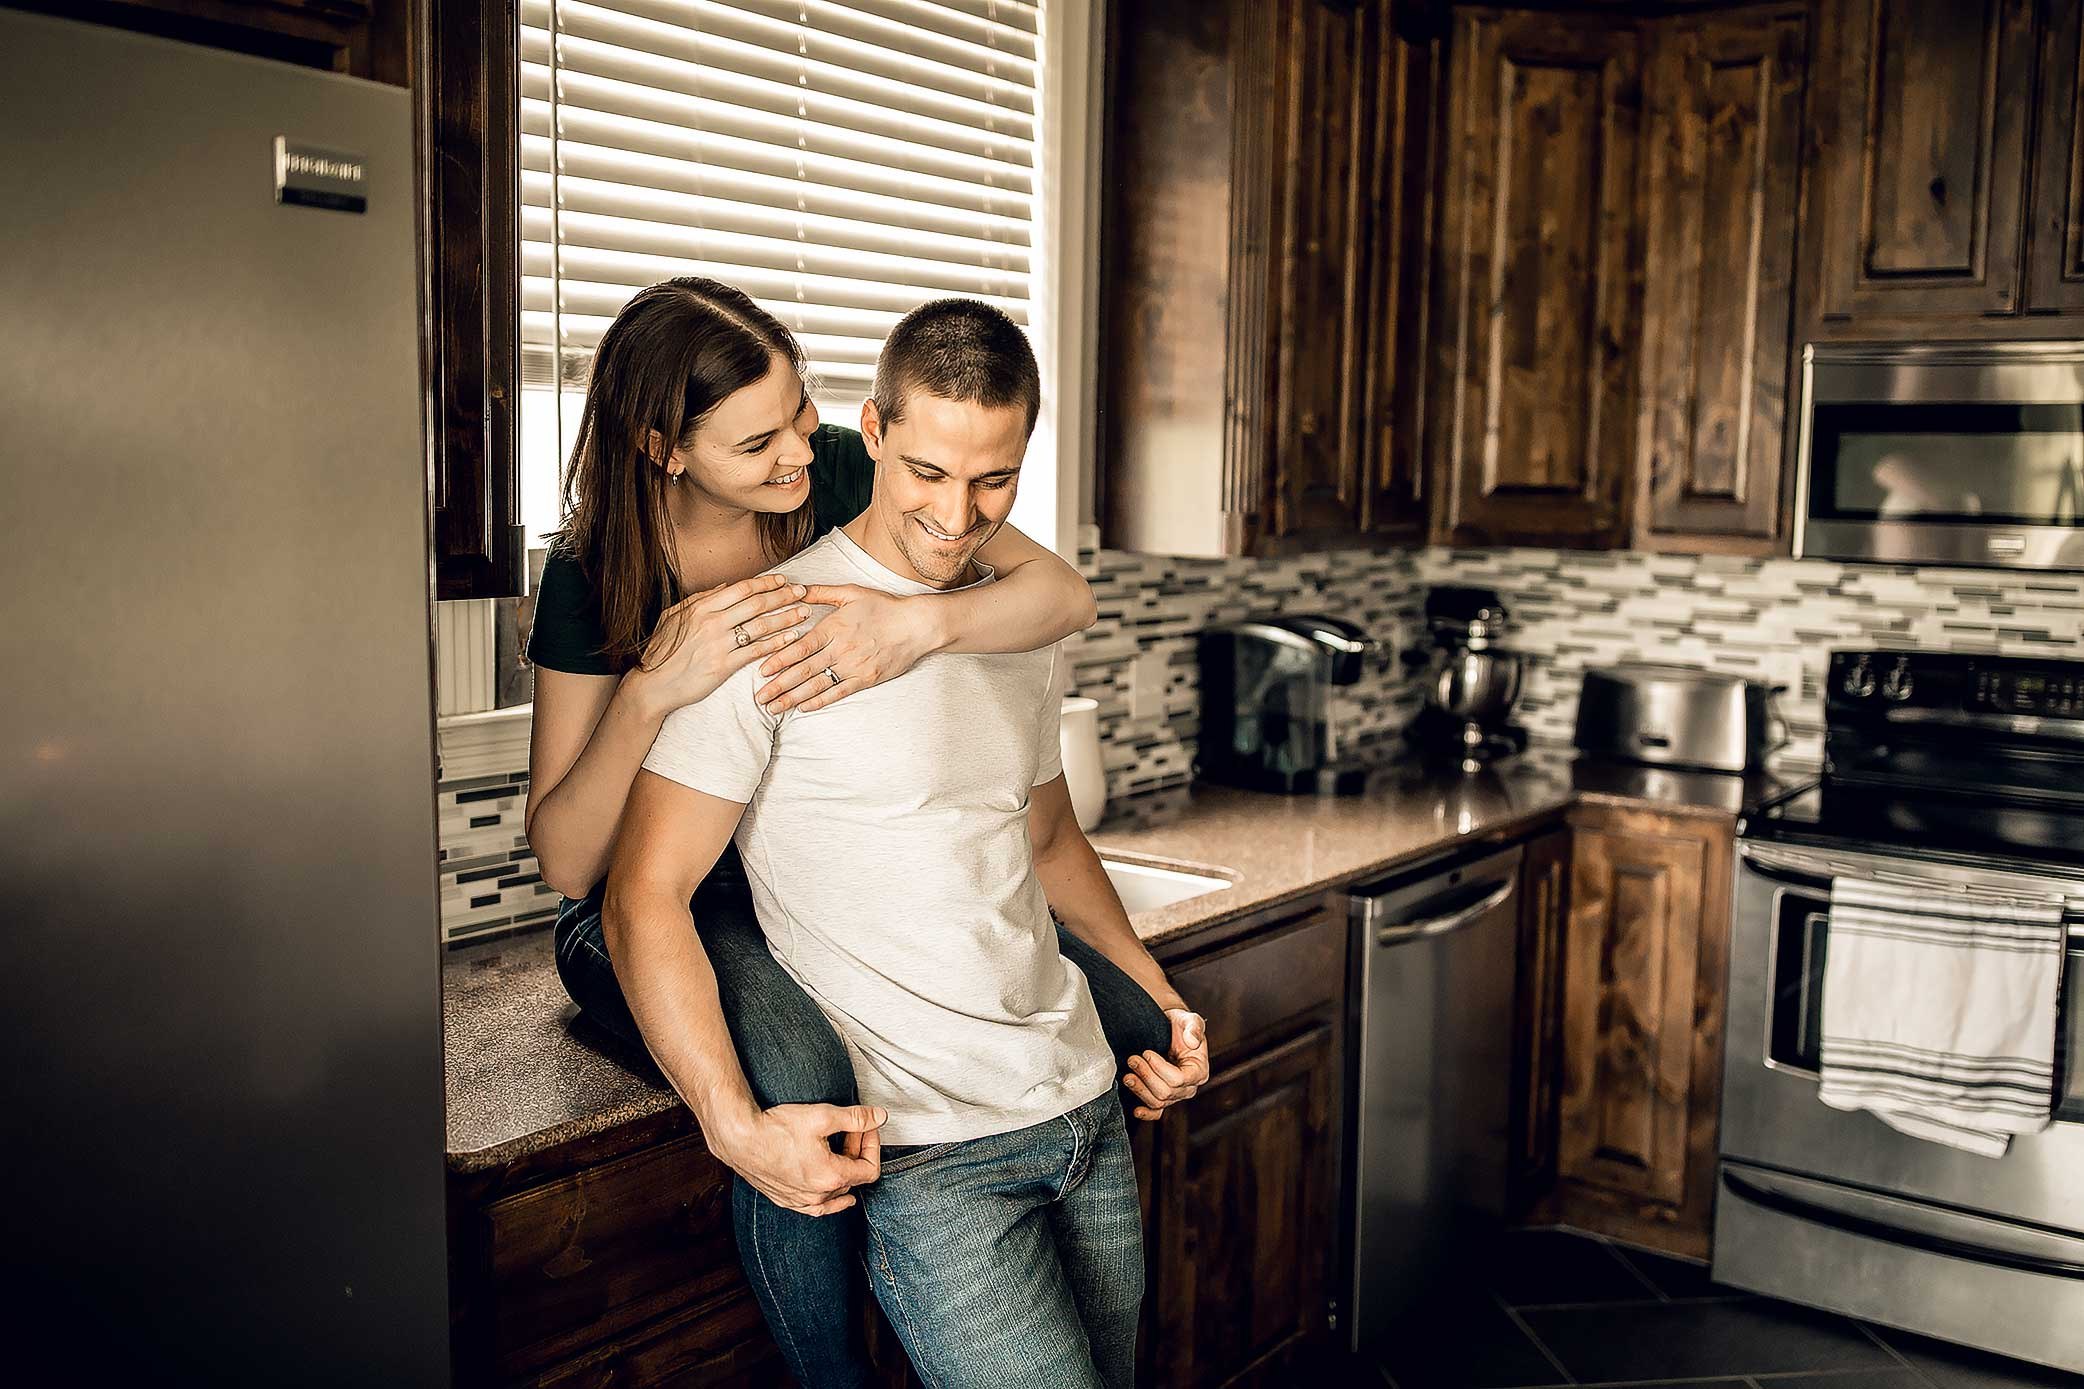 shelby-schiller-photography-lifestyle-home-couples-session-south-college-station-11.jpg